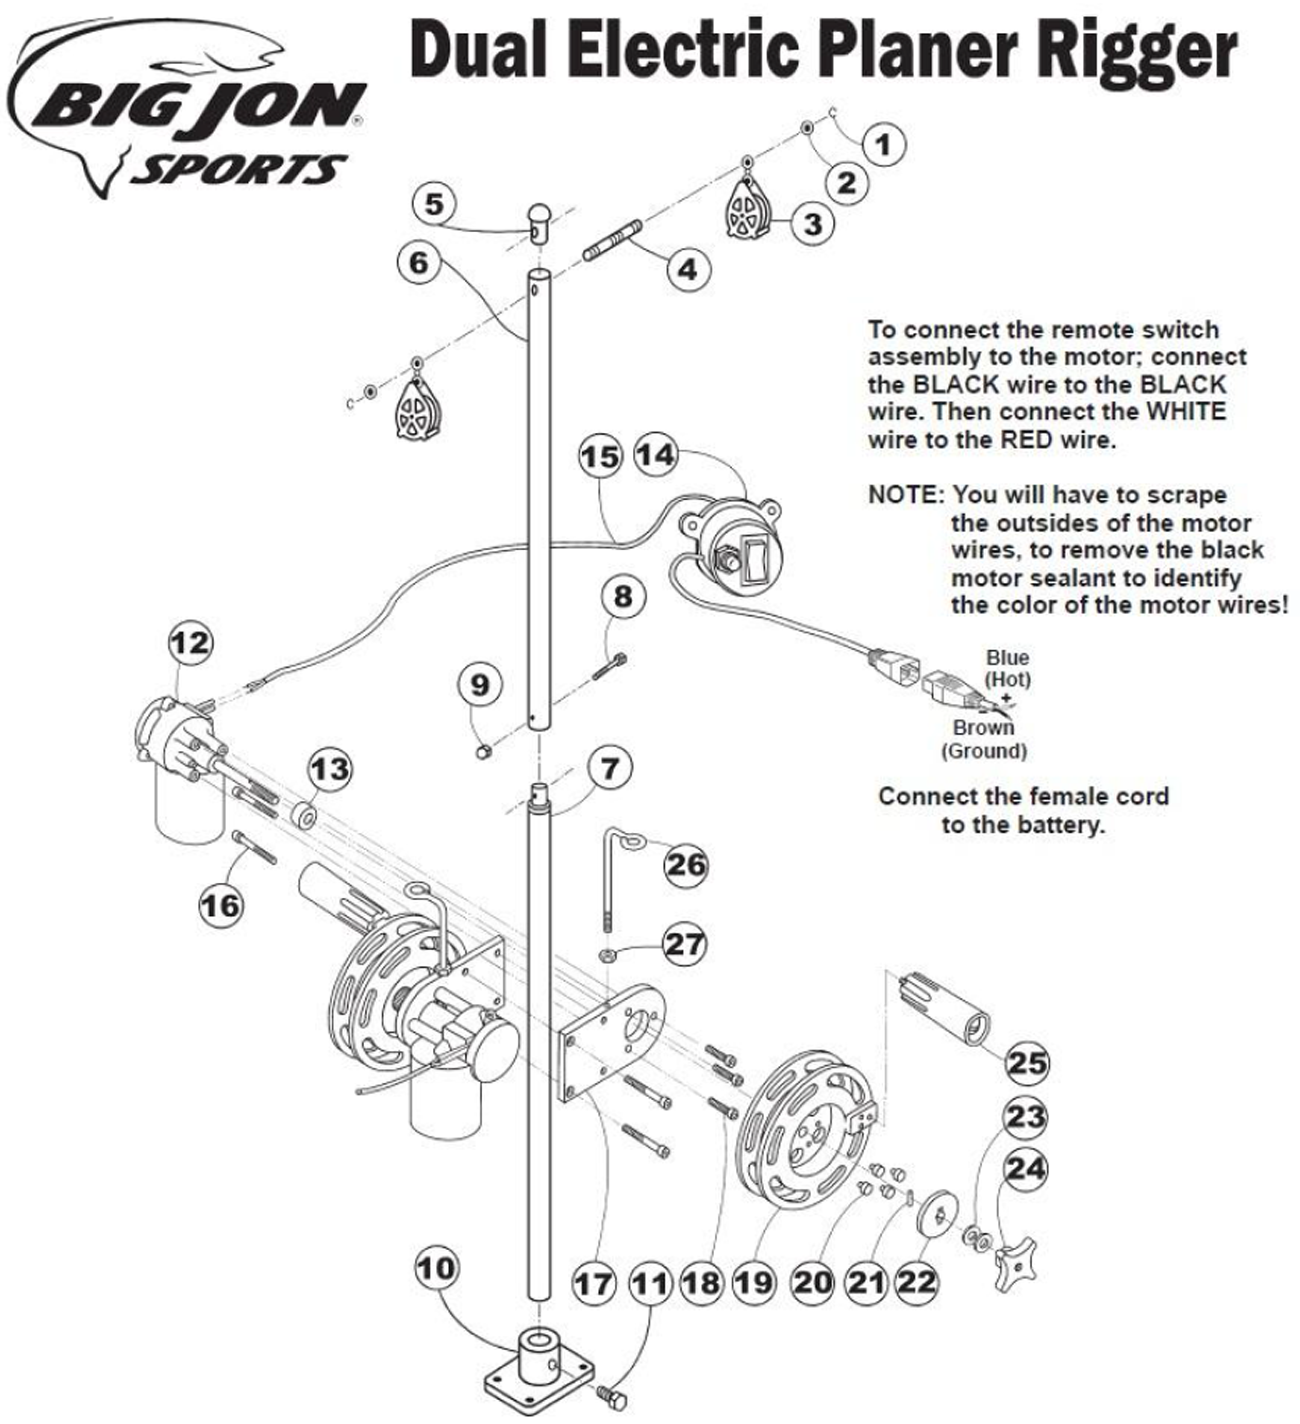 order big jon dual electric planer rigger parts online